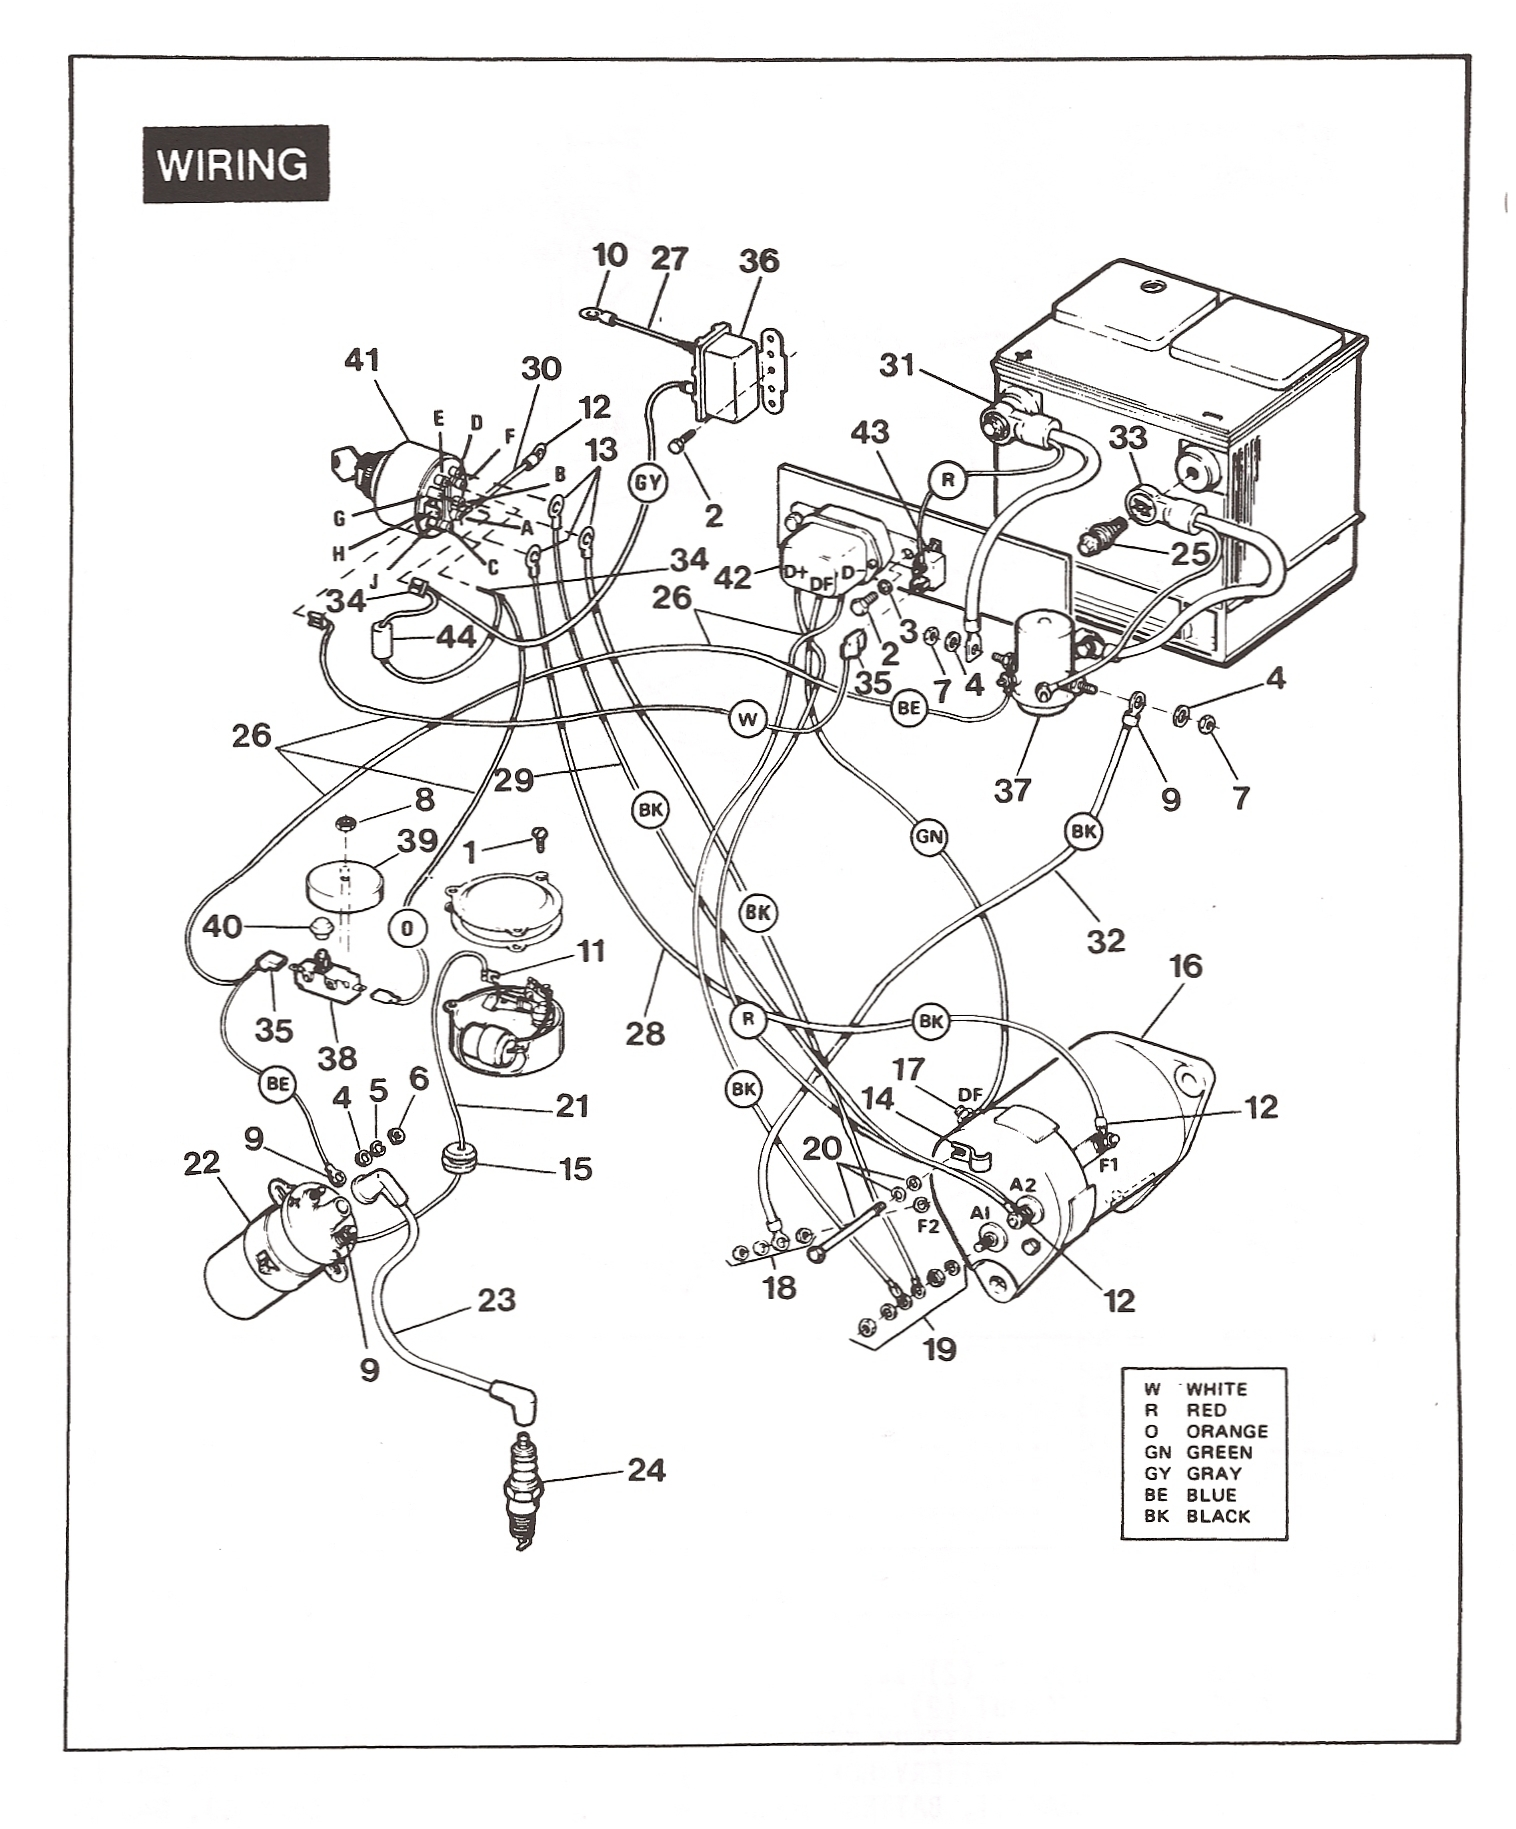 82_86_Columbia_Harley?resize=665%2C802 yamaha wiring diagram g16 the wiring diagram readingrat net Club Car Wiring Diagram Gas Engine at gsmx.co